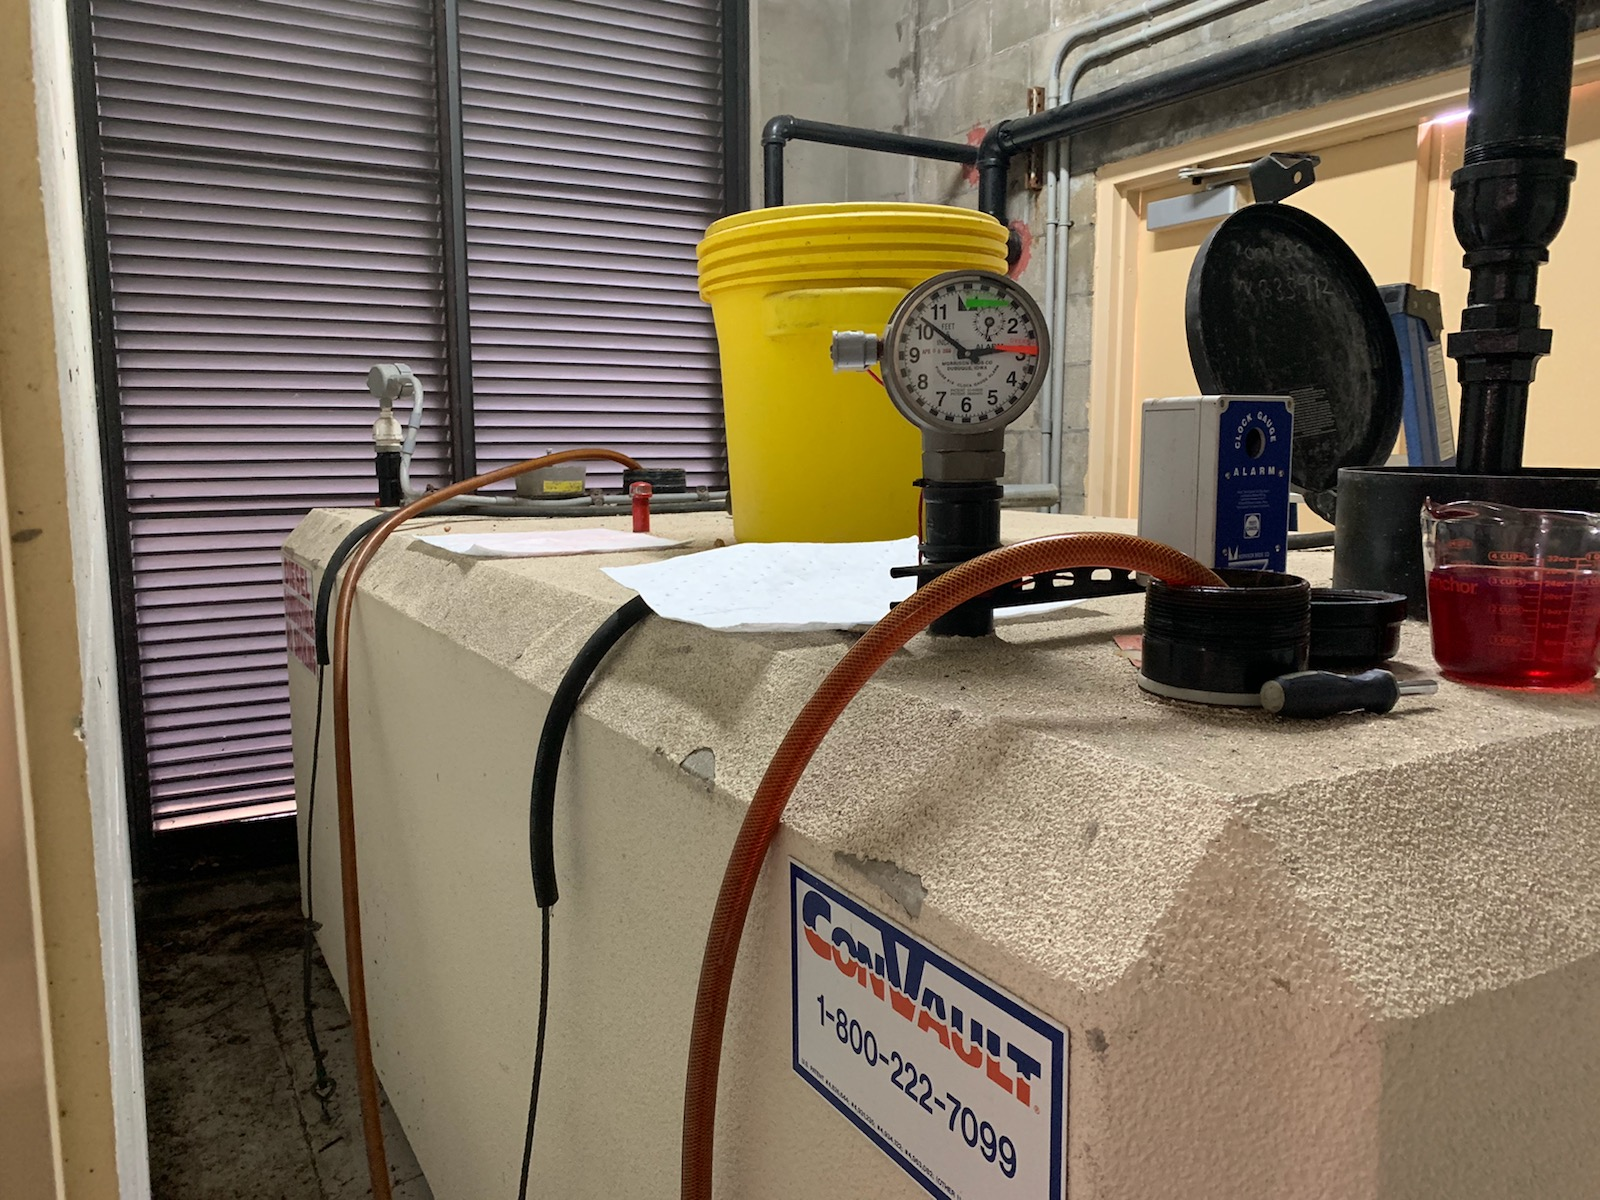 cleaning fuel in storage tanks